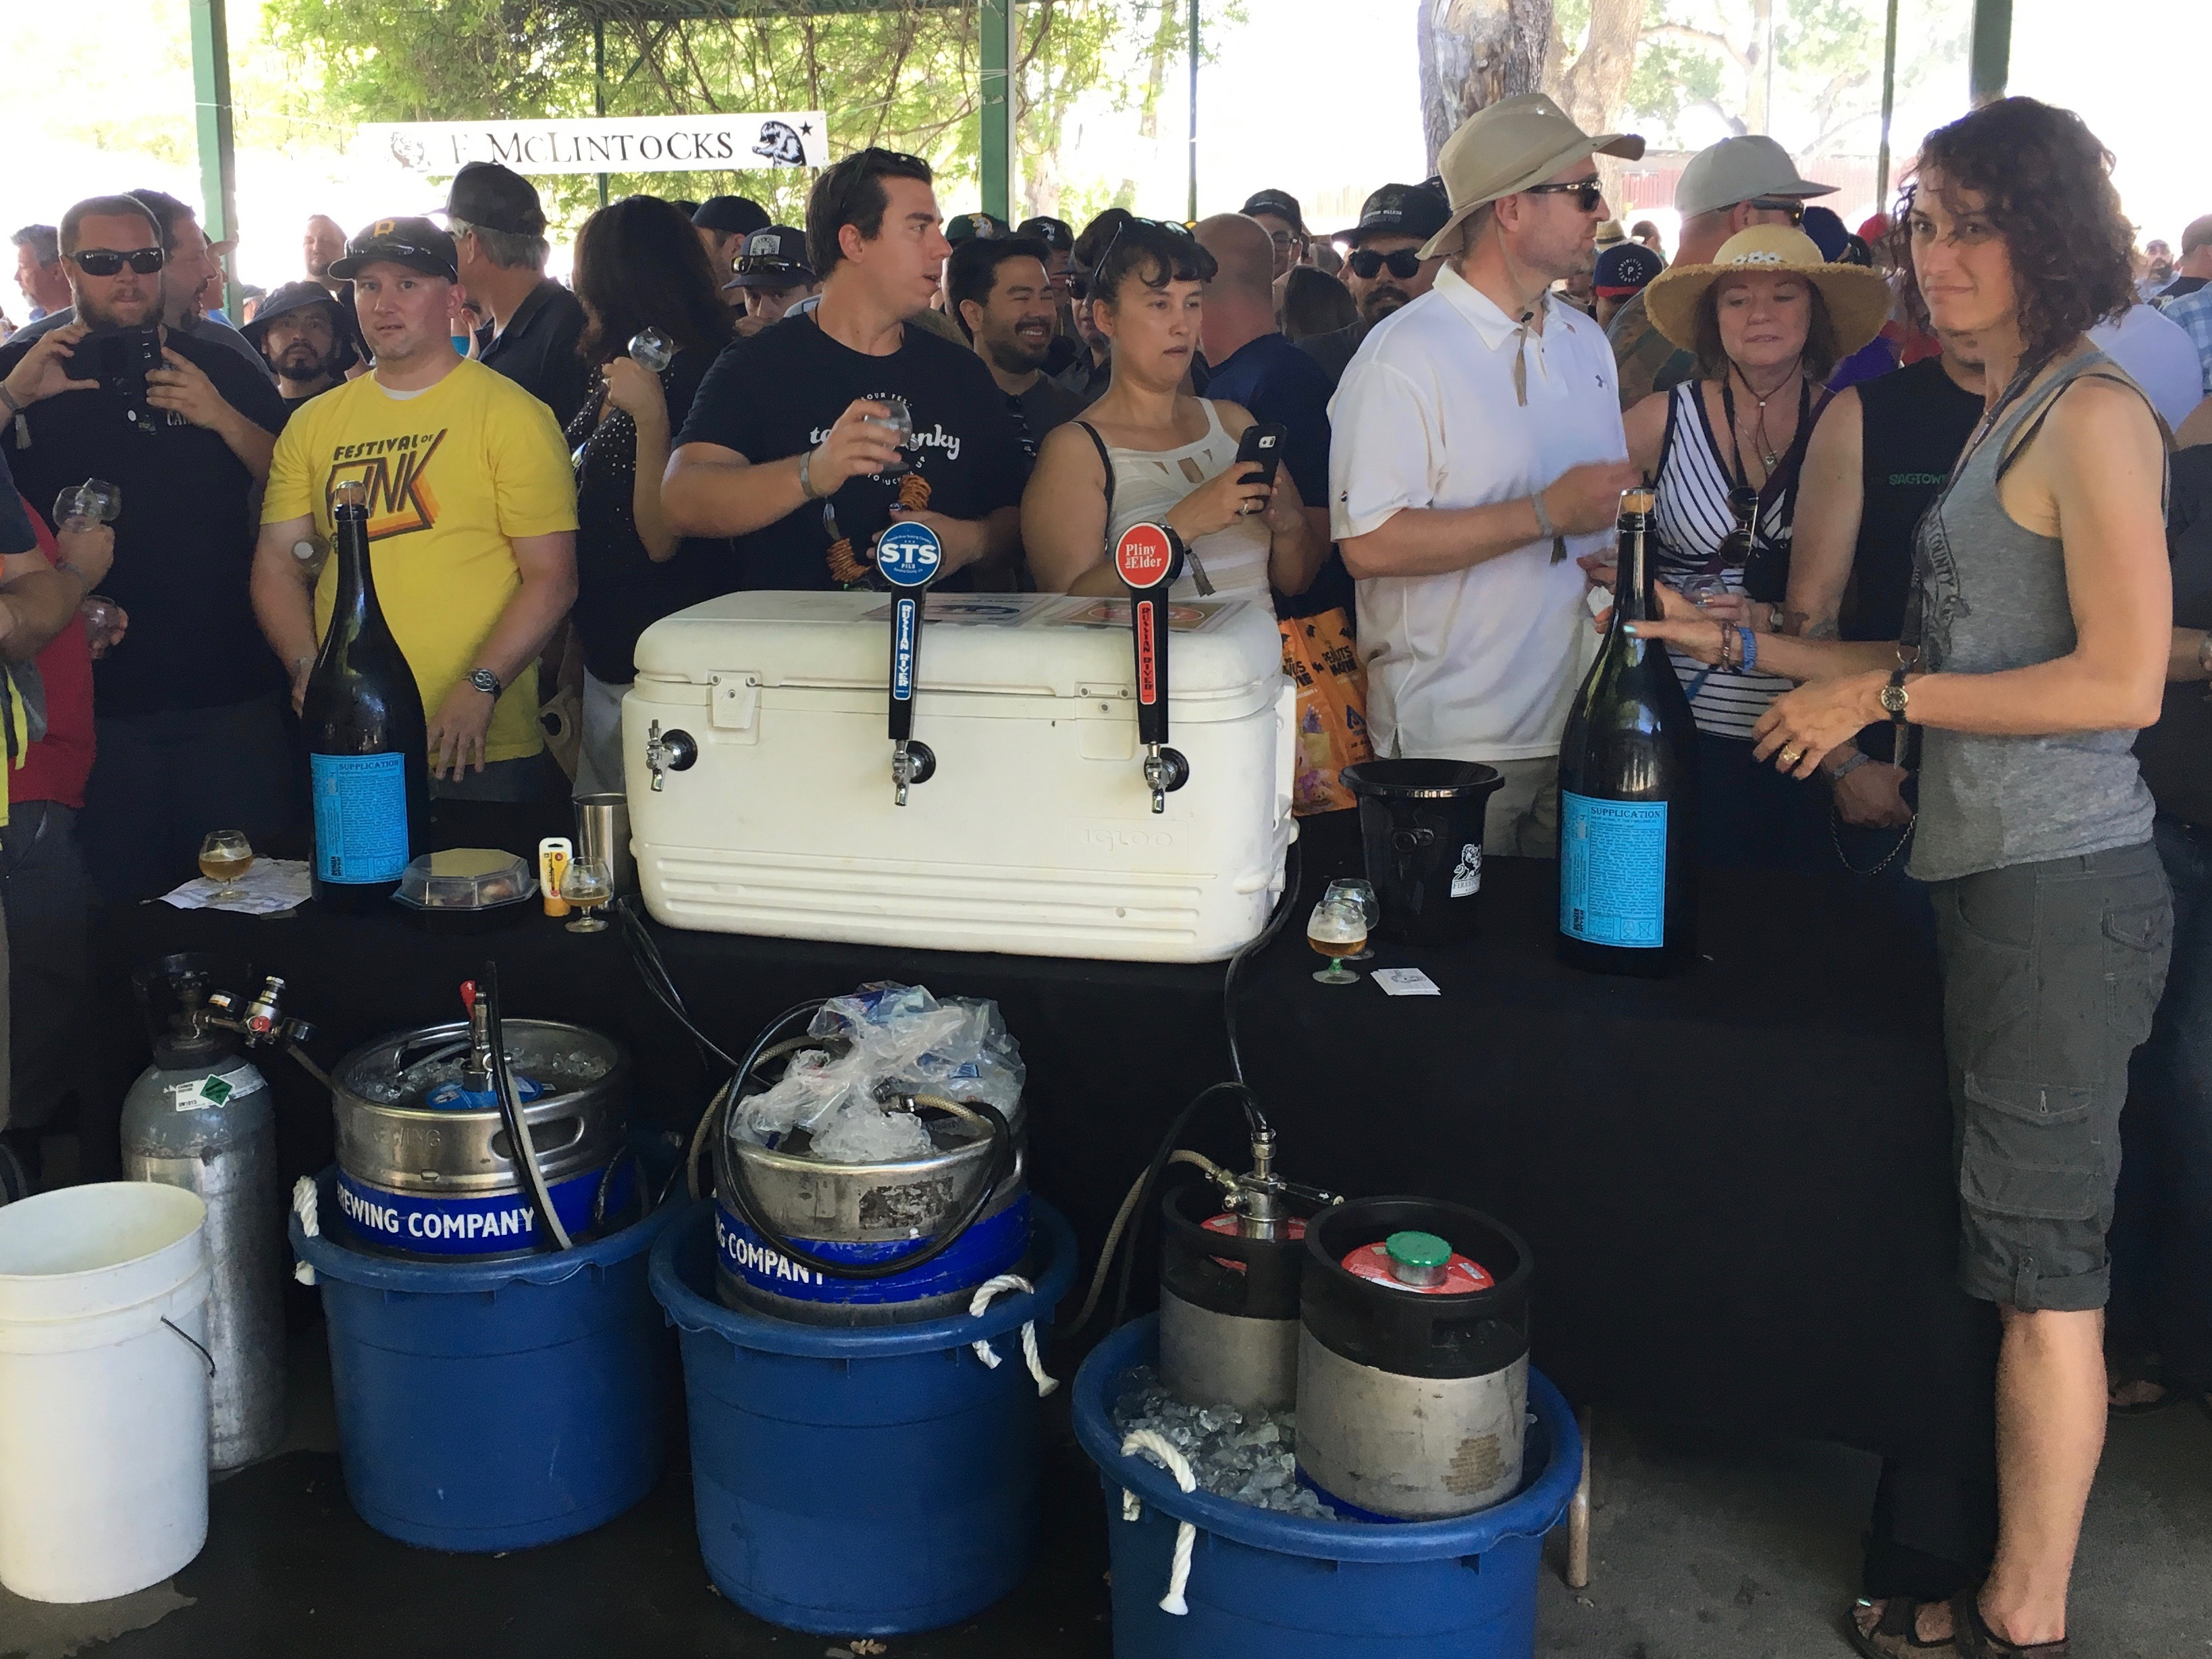 The line begins to form just prior to the uncorking of the 6 litter bottles of 2009 Russian River Supplication during the 2016 Firestone Walker Invitational Beer Fest.